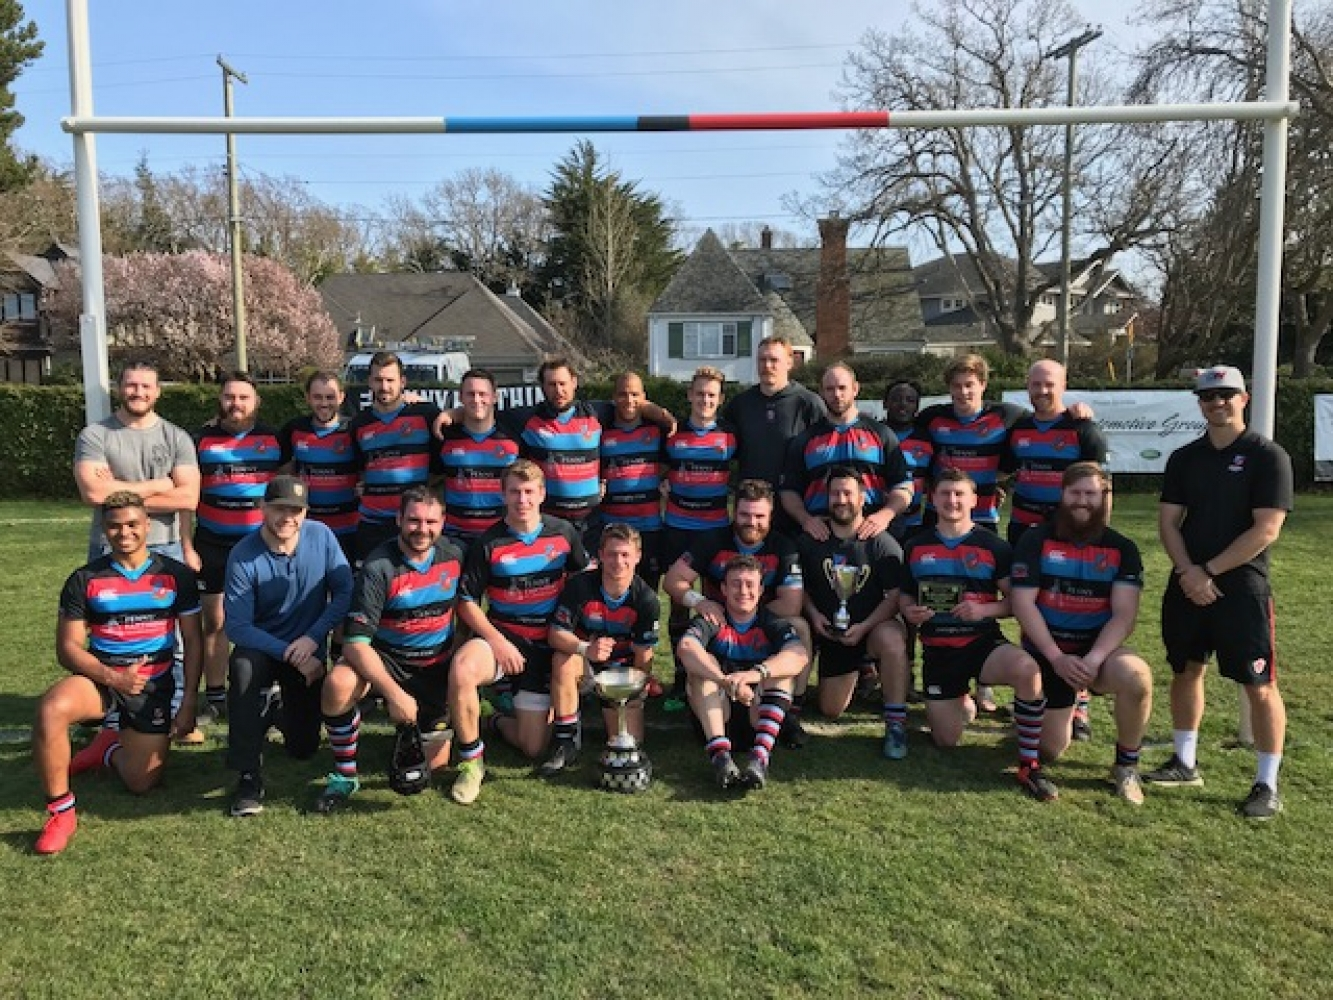 BARNARD CUP CHAMPS REPEAT!